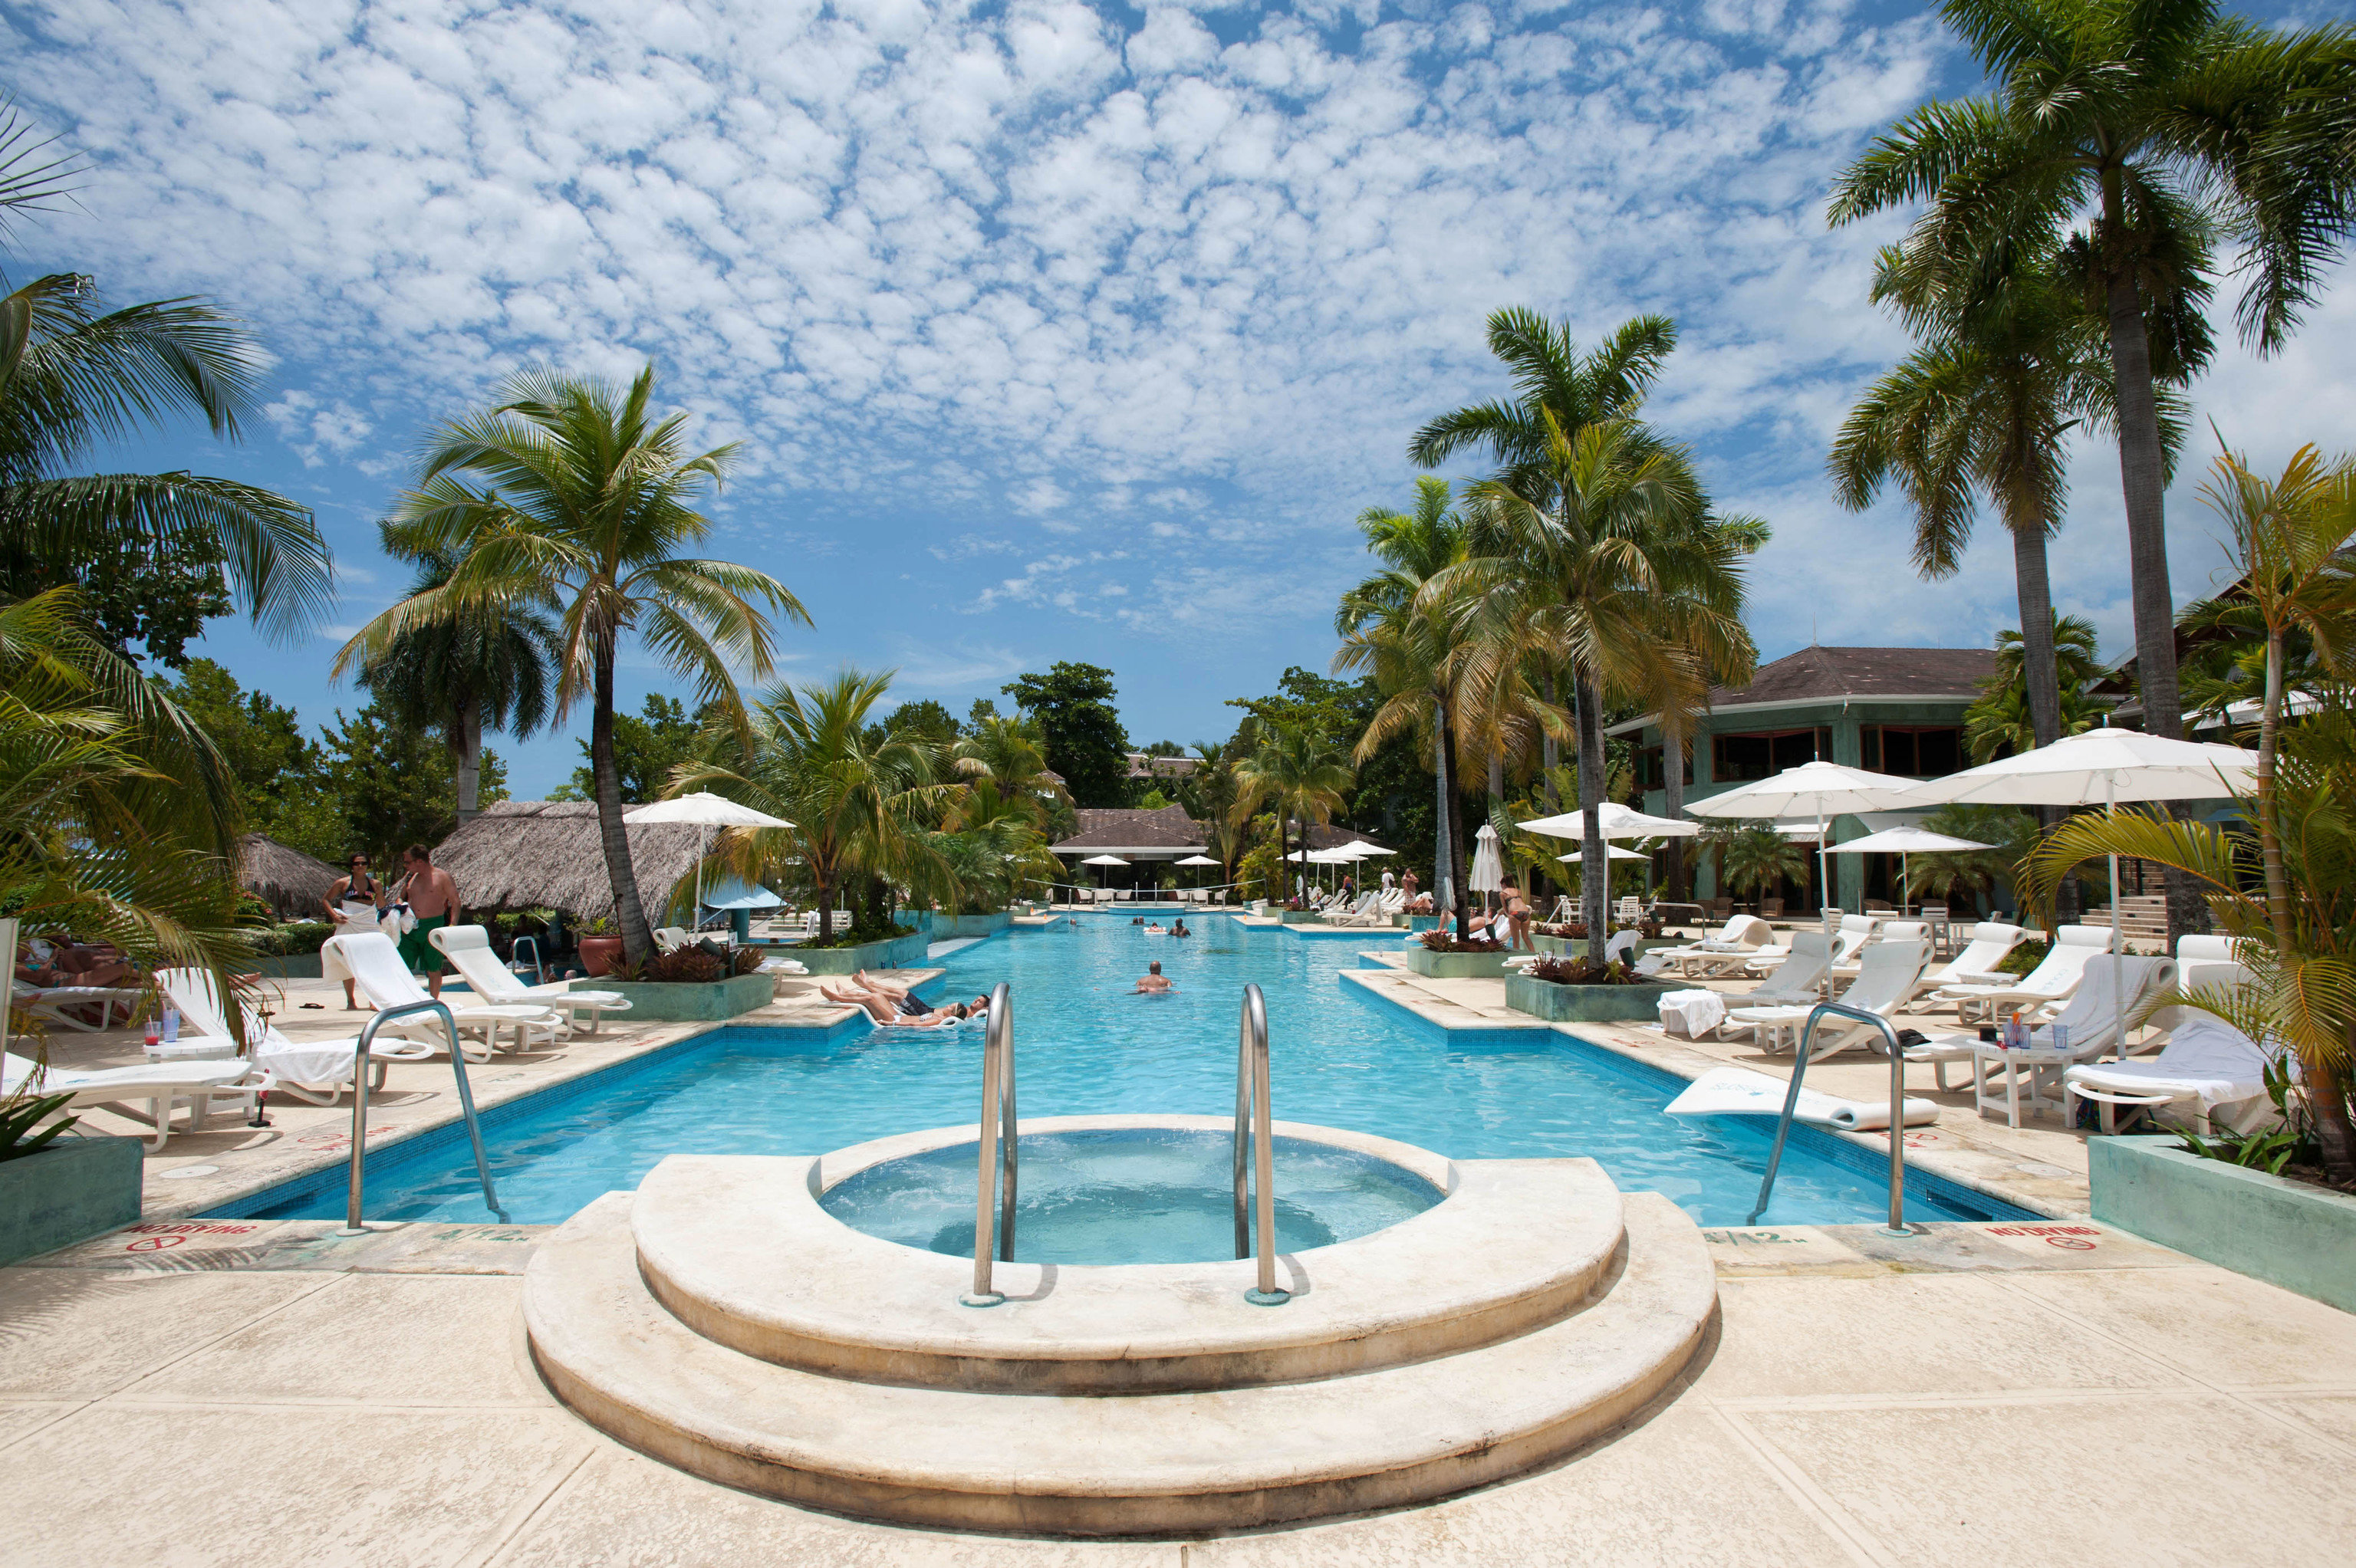 Couples Negril - Negril | STSVacations